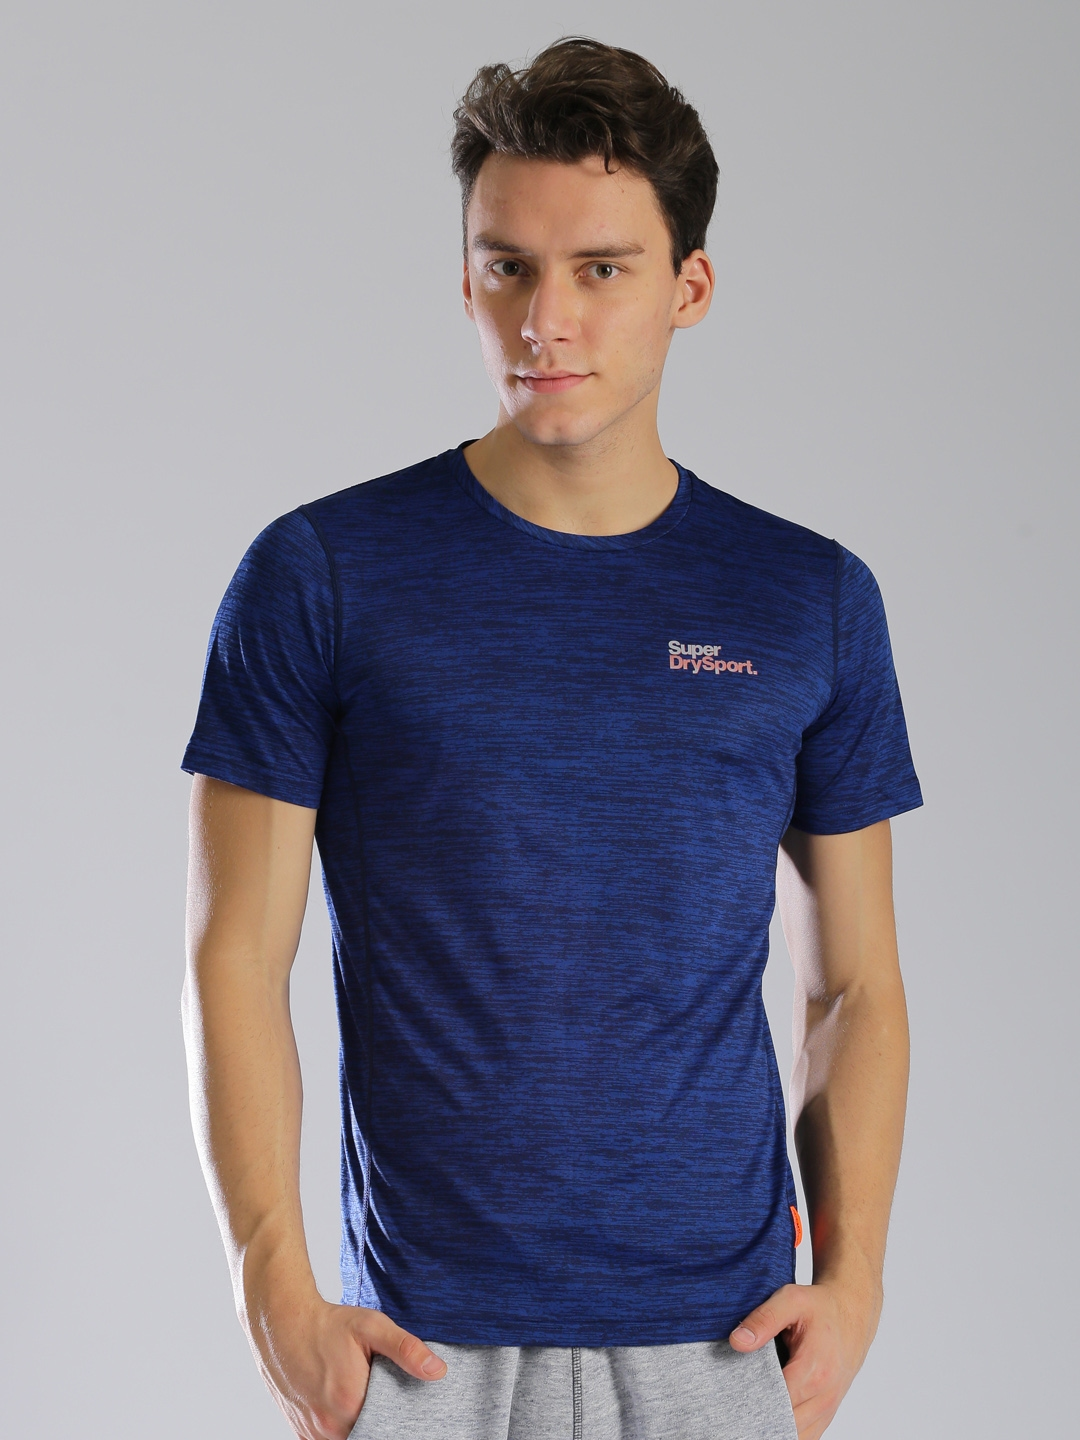 fbc259399096 Buy Superdry Men Blue Self Design Active Fit Round Neck T Shirt ...